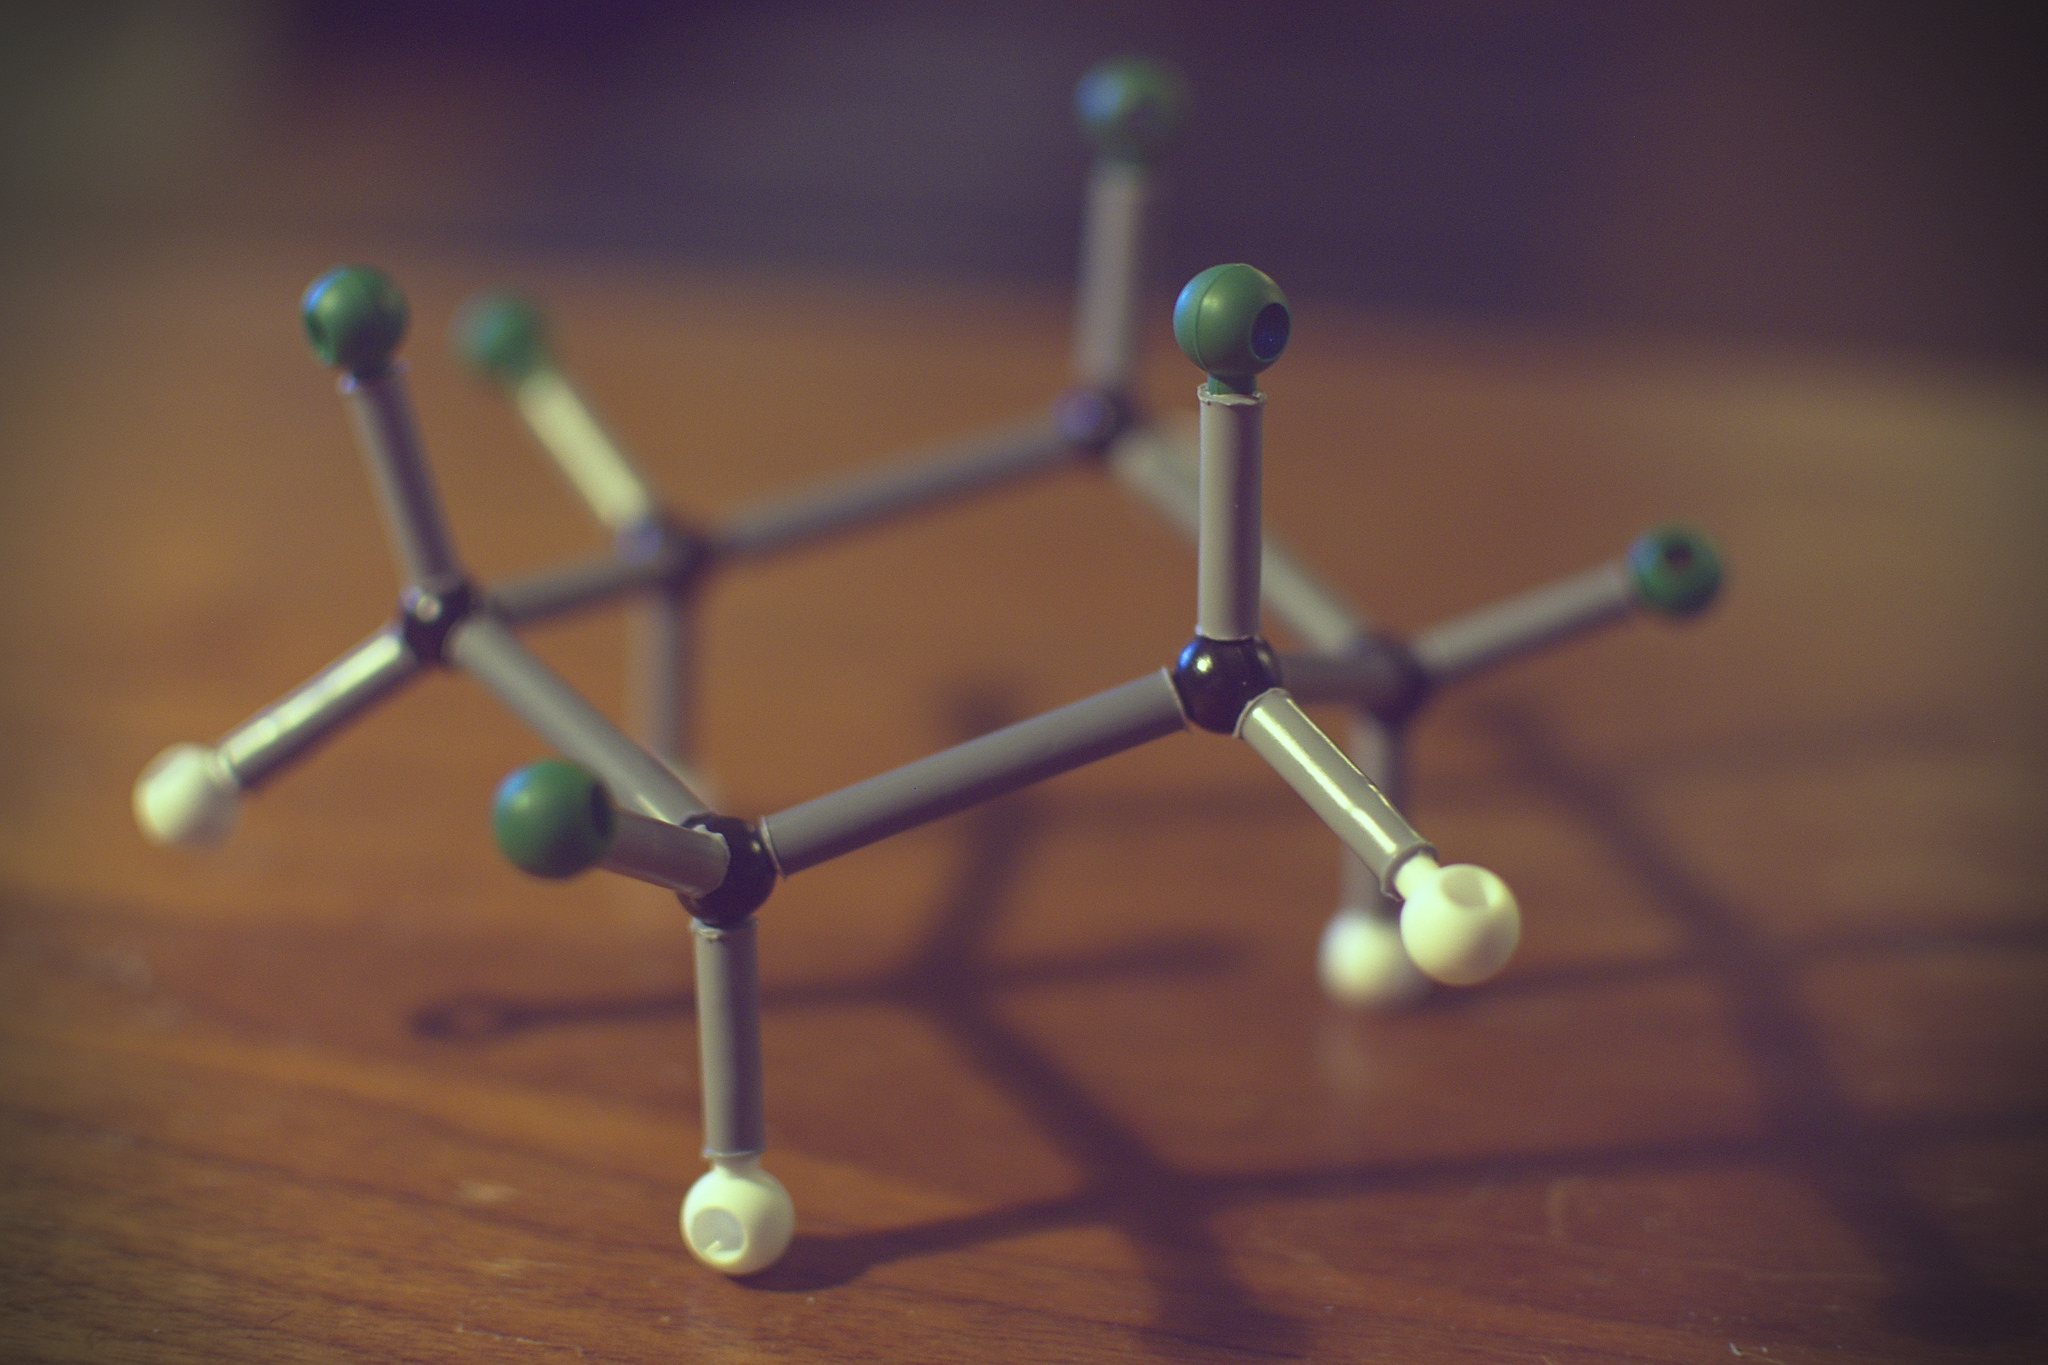 Picture: Cyclohexane by Hanna Sörensson, licence: CC BY-SA 2.0